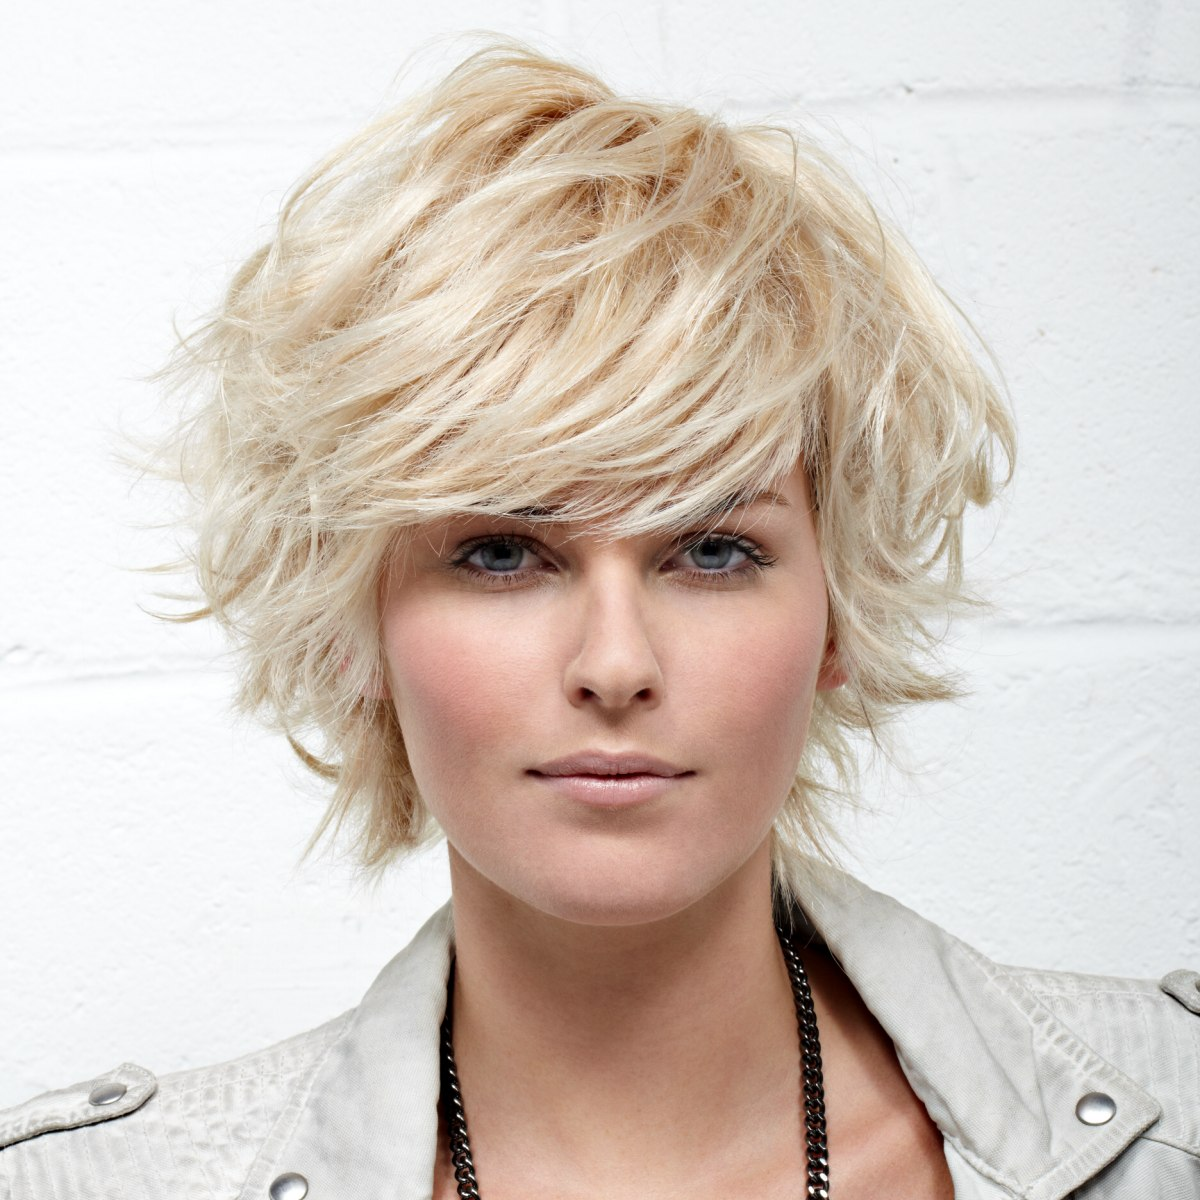 Medium Hairstyles: Feathery Short Haircut With The Ends Flipped Up And Out